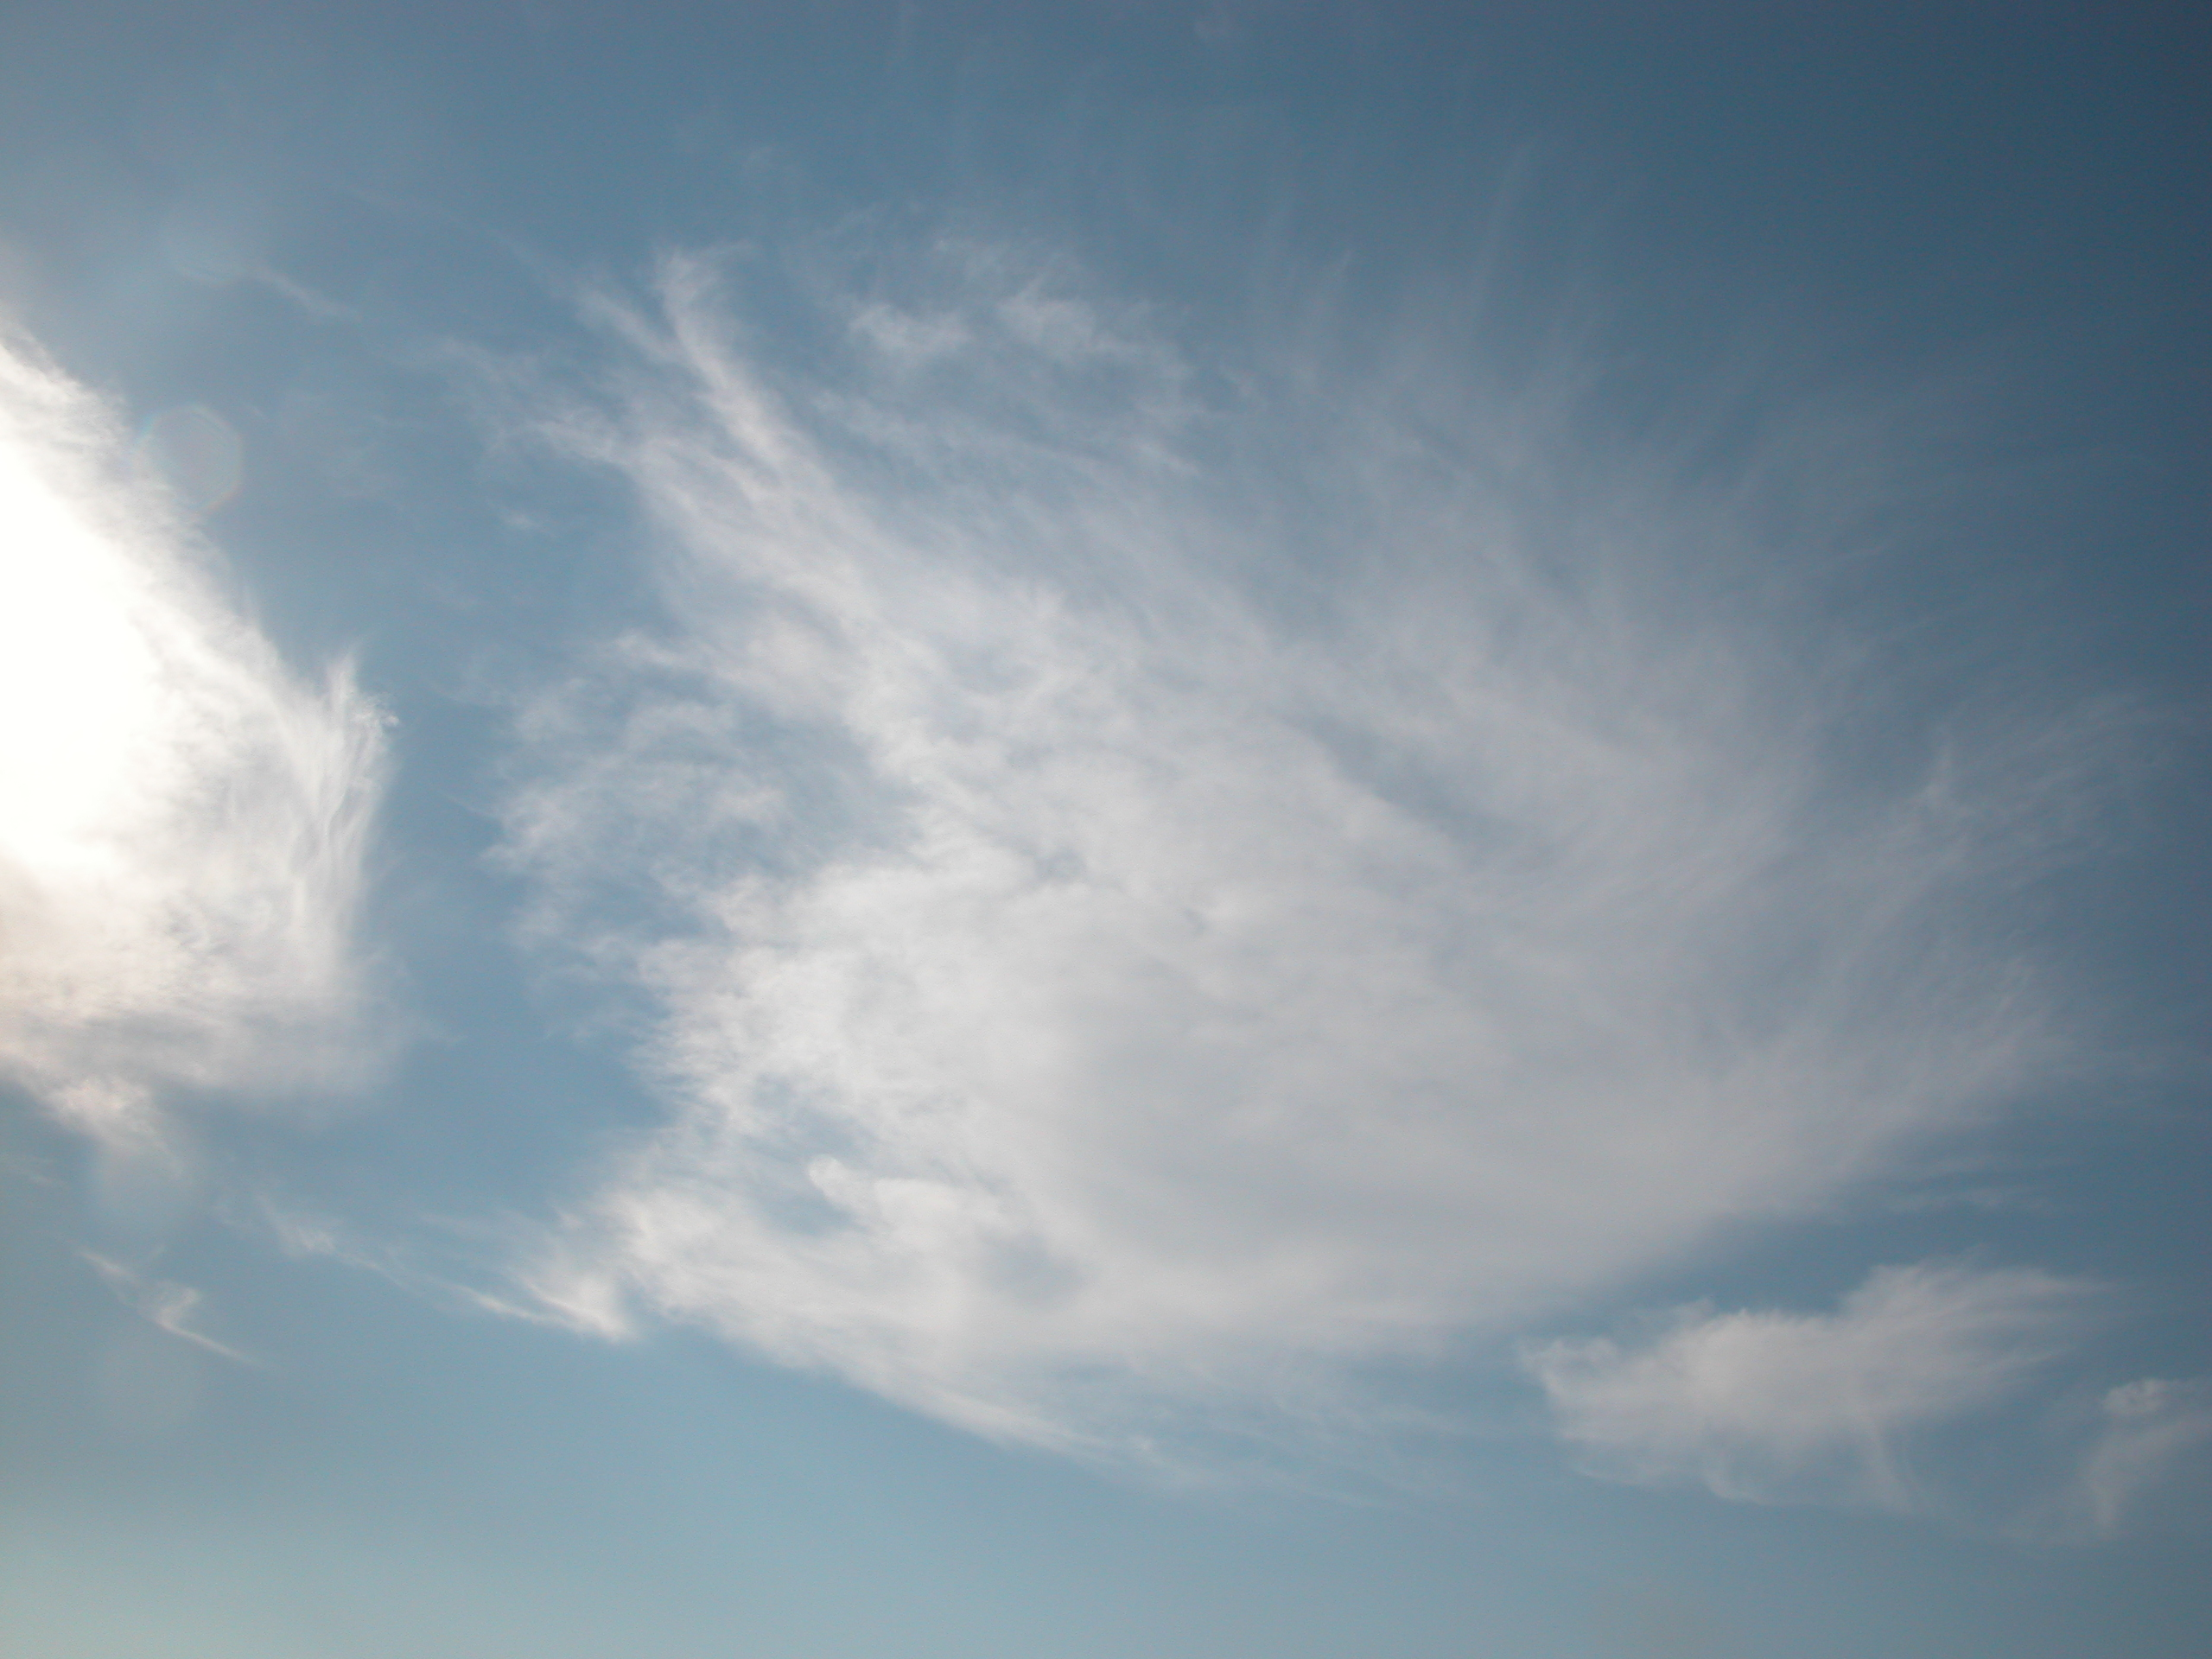 sky bright floating by clouds image